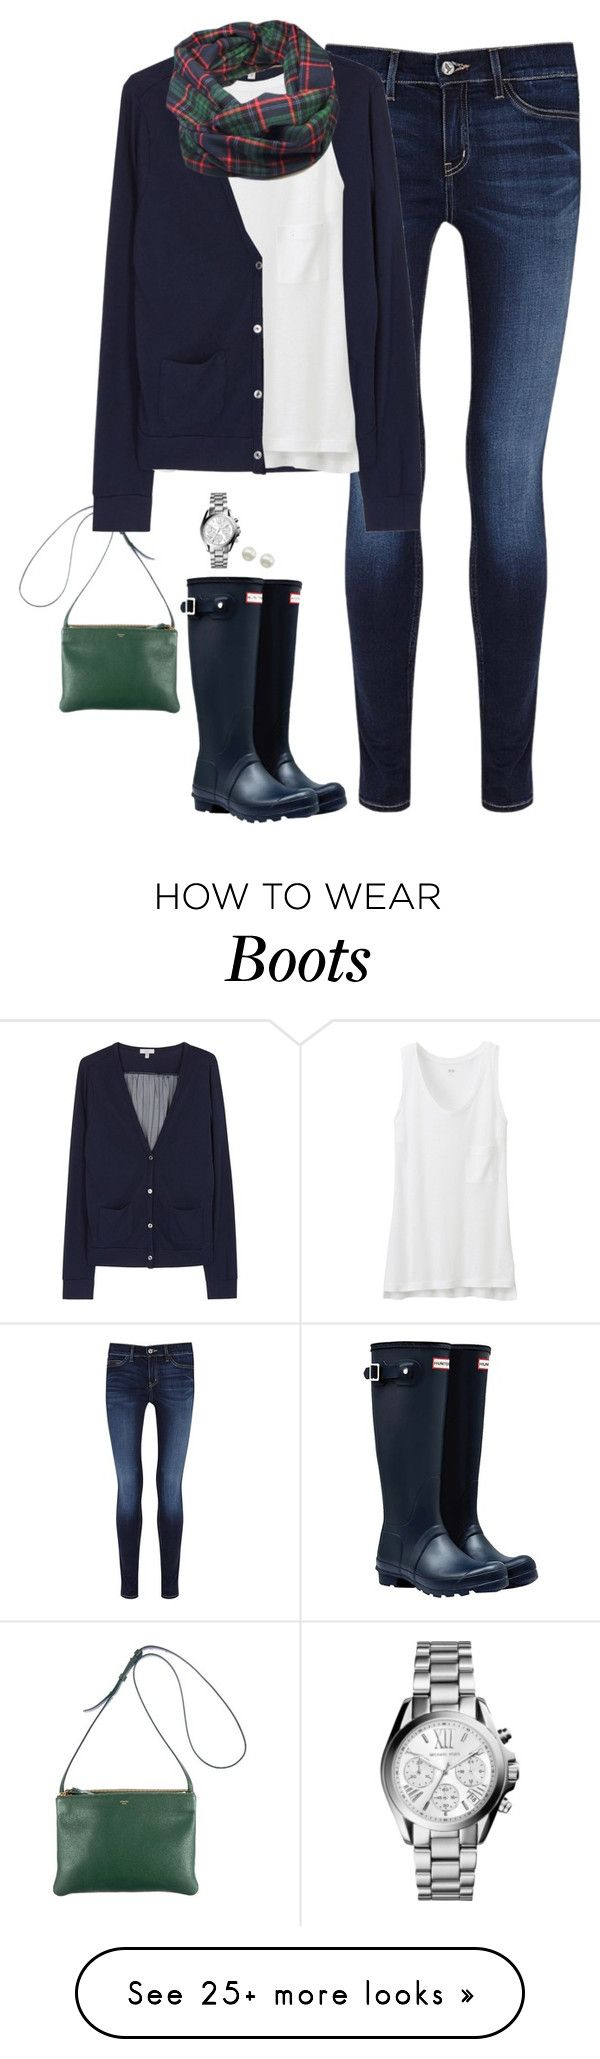 """Plaid scarf, navy cardigan & Hunter boots"" by steffiestaffie on Polyvore featuring MiH, Hunter, CÉLINE, Clu, Uniqlo, Majorica and Michael Kors"